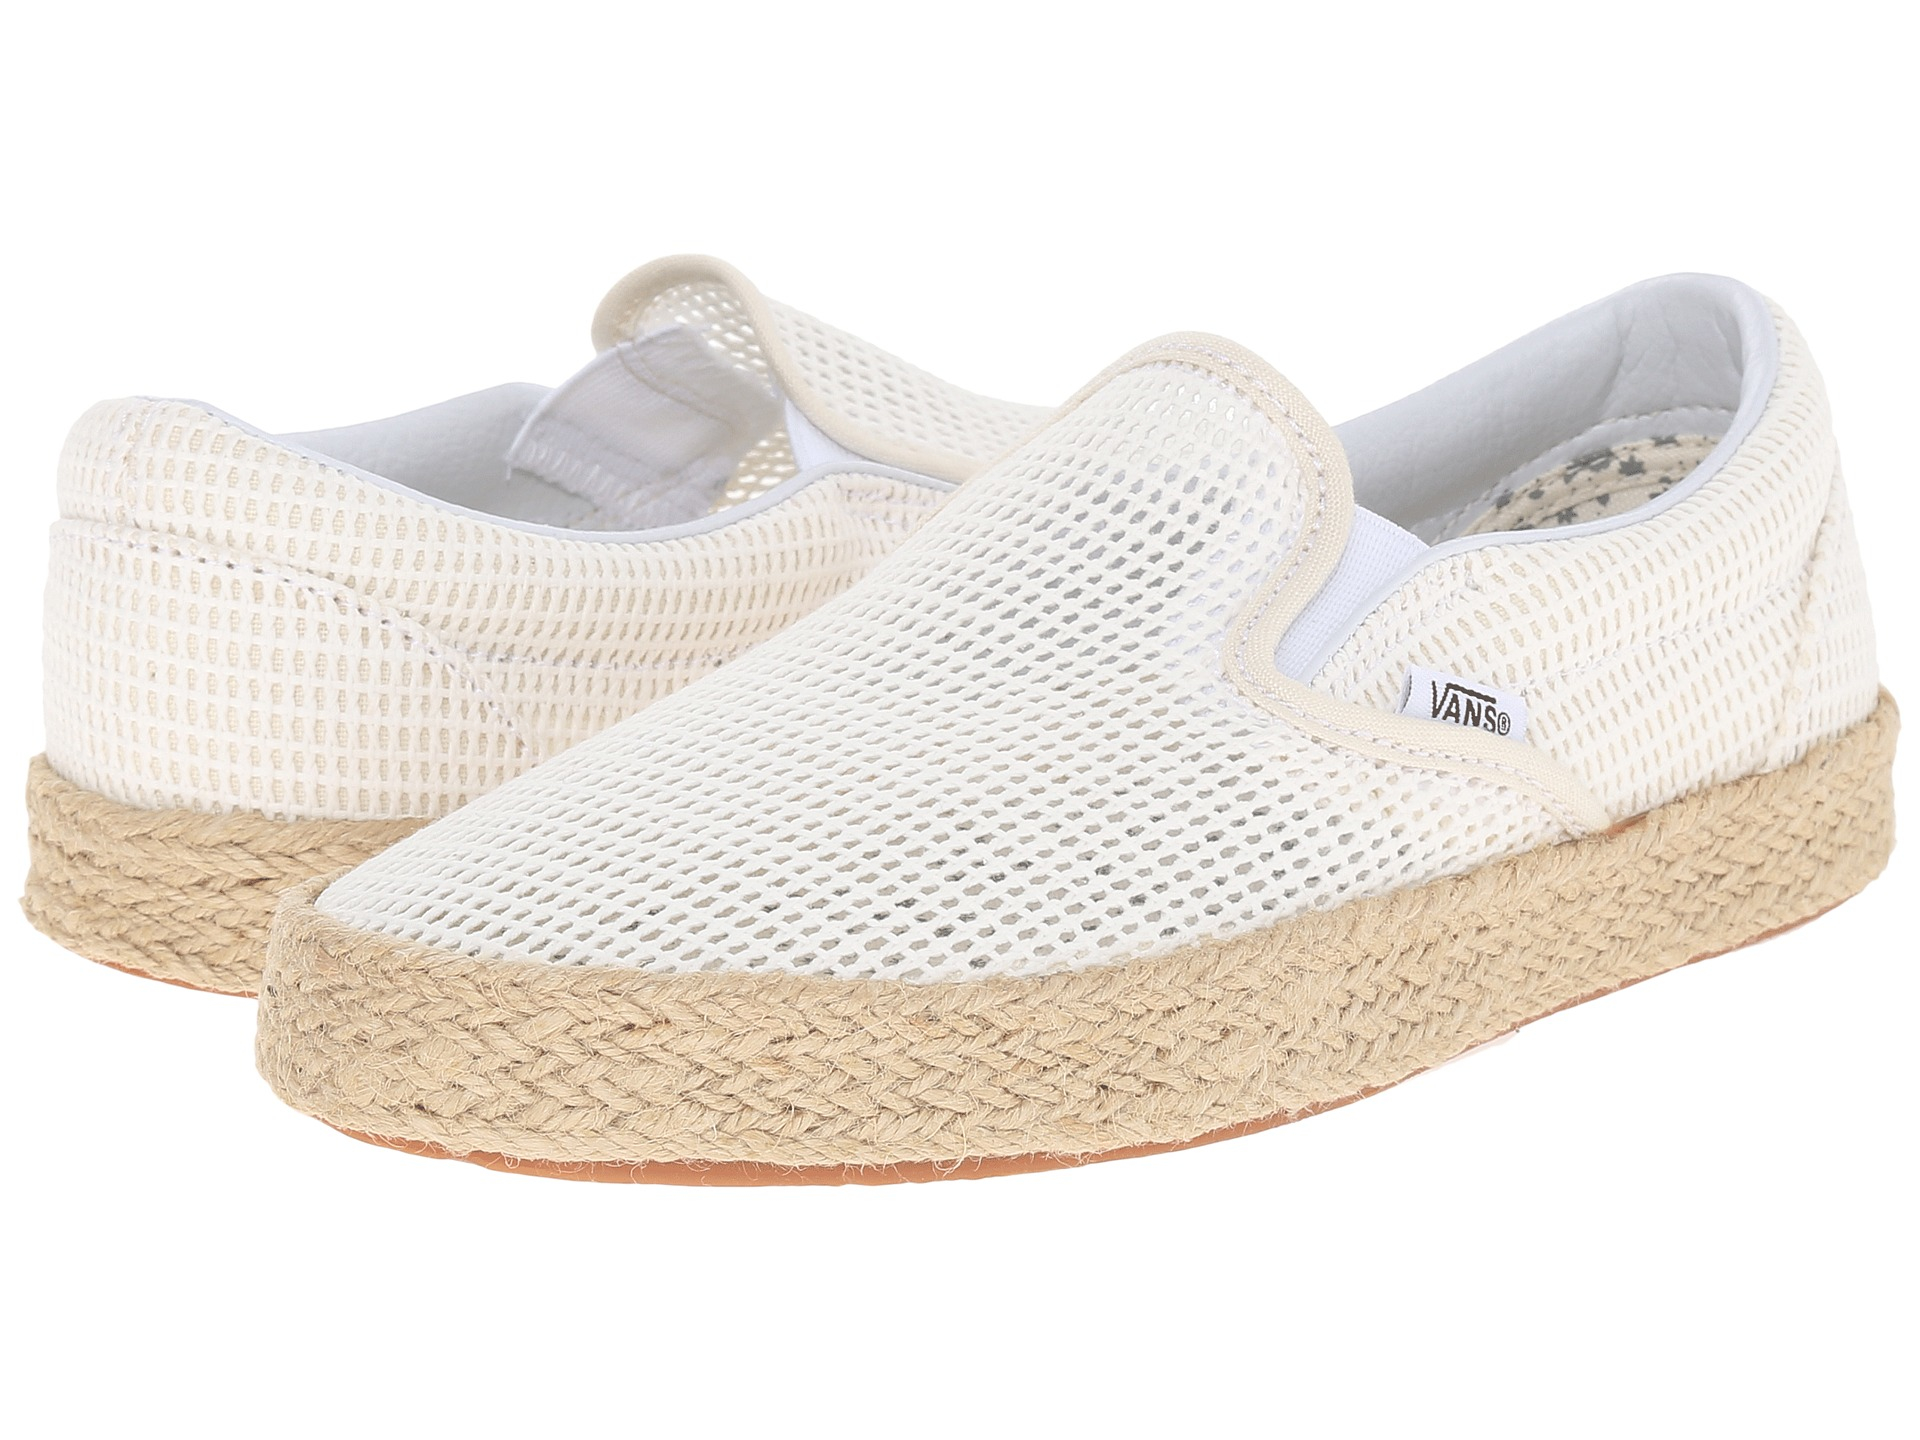 97af23b614d Lyst - Vans Classic Slip-on Espadrille in White for Men